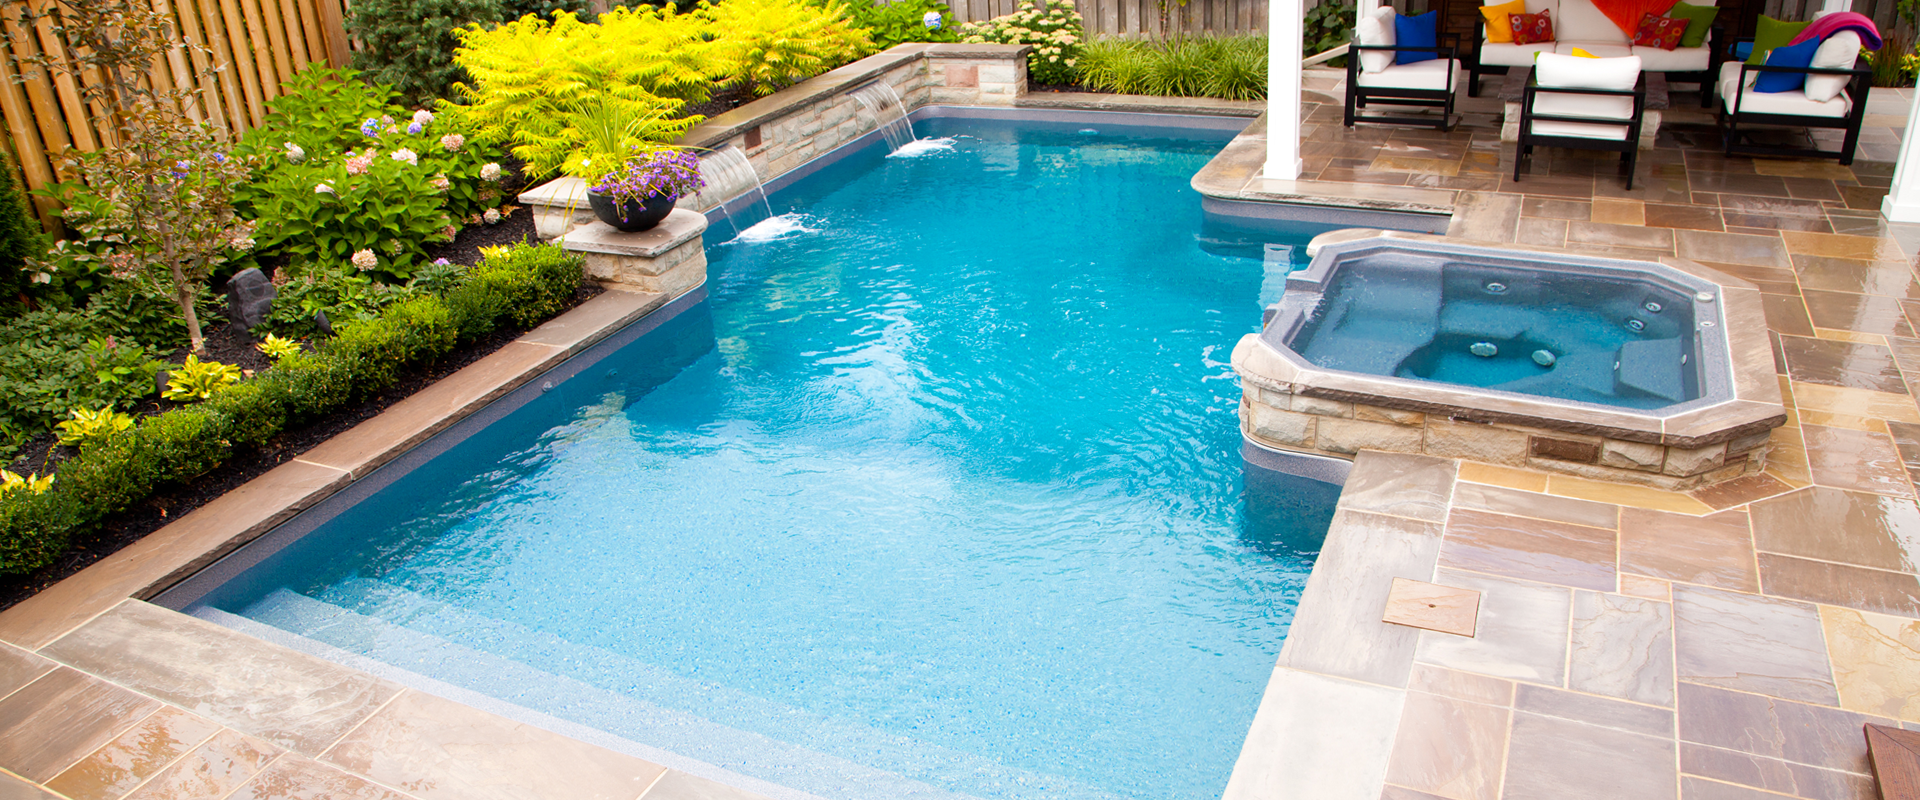 Inground Onground And Above Ground Pools Pioneer Pools